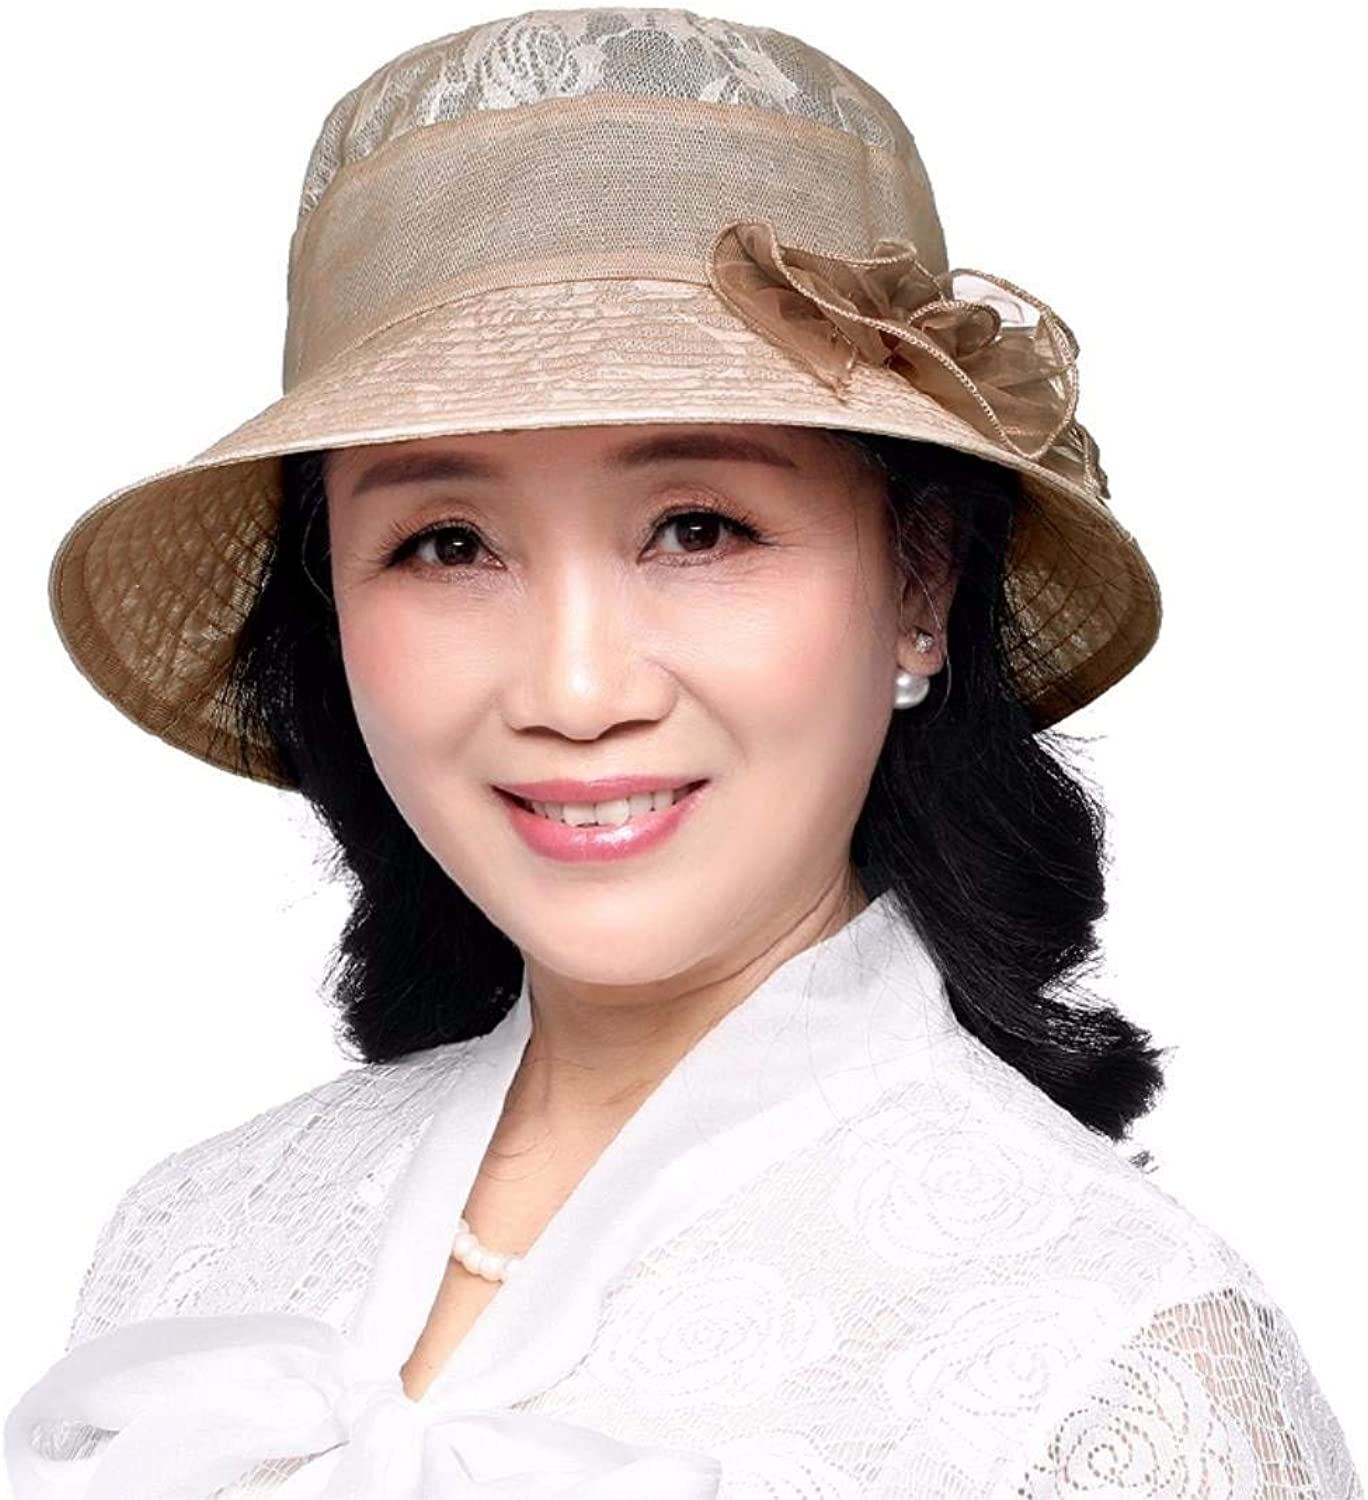 Dingkun Gift for Mom Gift for grandmother Summer hat folding cap old hat sunscreen hat Beach Hat Hat middle aged hat